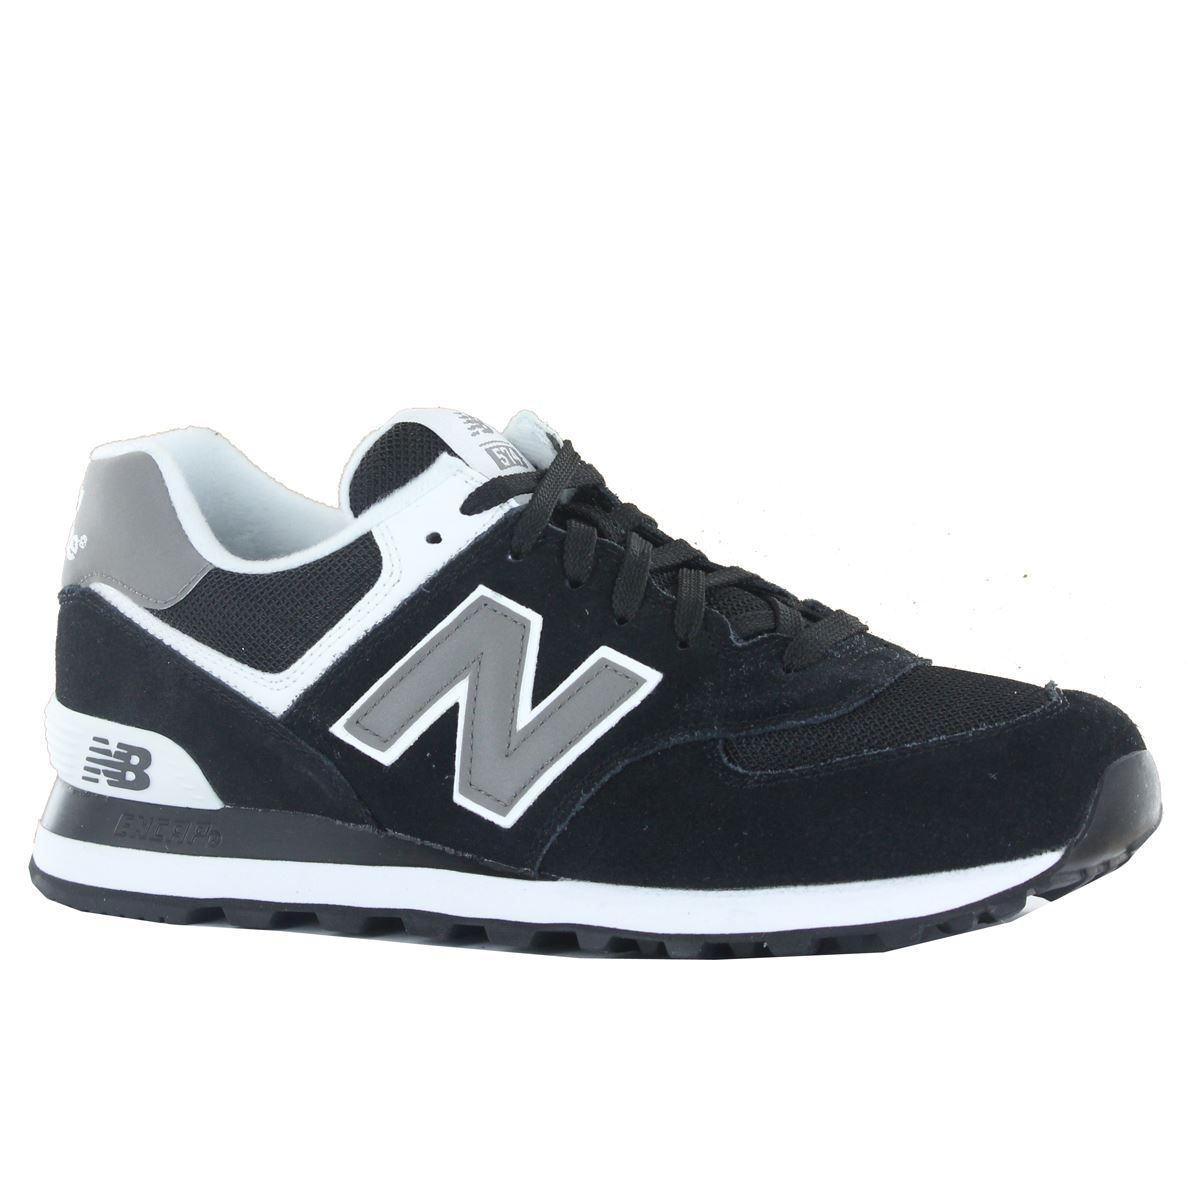 new balance classic traditionnels m574 leather mens. Black Bedroom Furniture Sets. Home Design Ideas